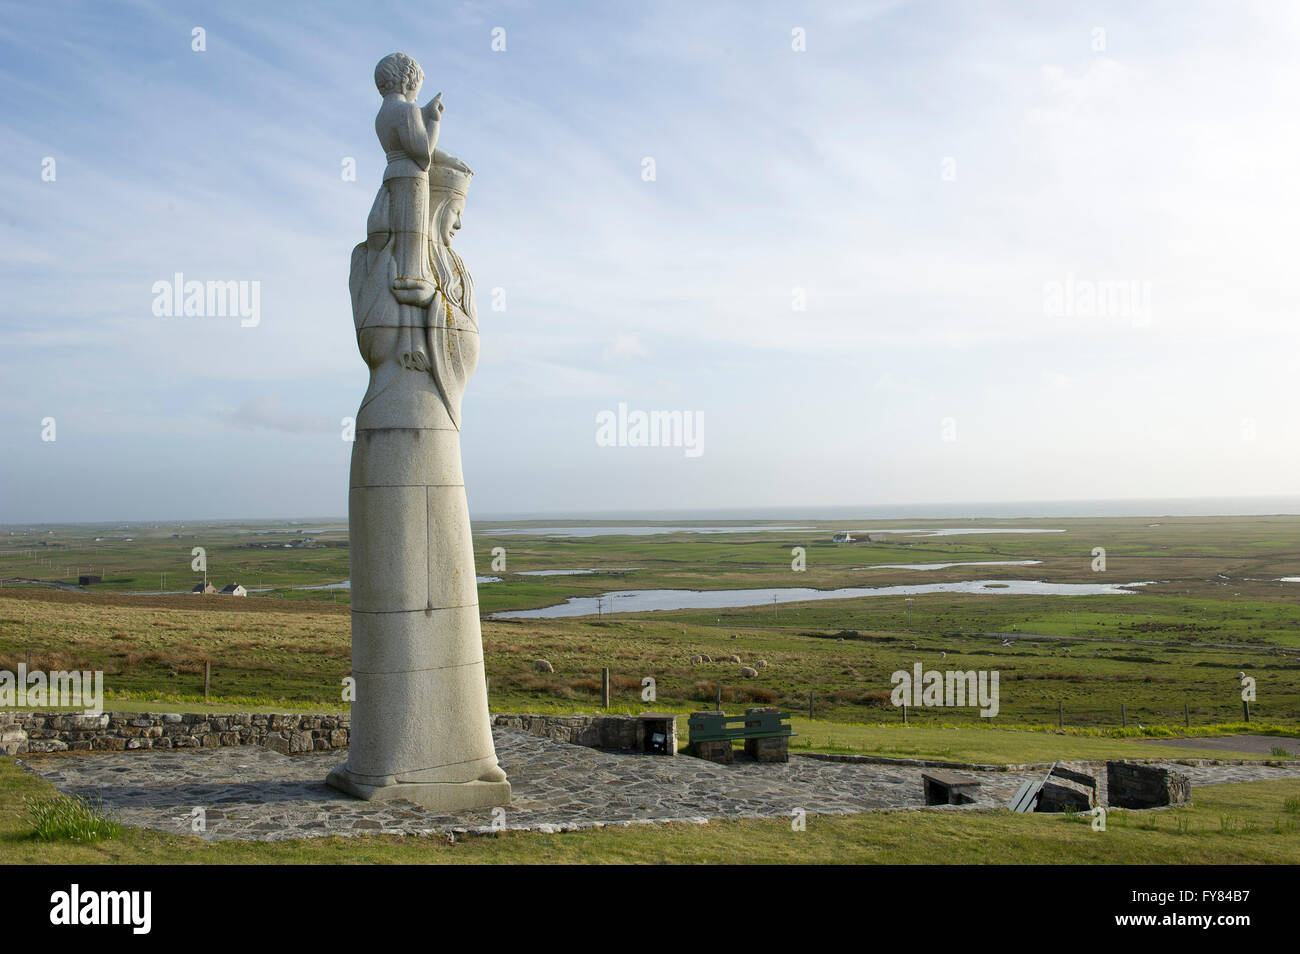 The statue of 'Our Lady of The Isles' by Hew Lorimer on the side of Rueval in South Uist, Outer Hebrides, - Stock Image